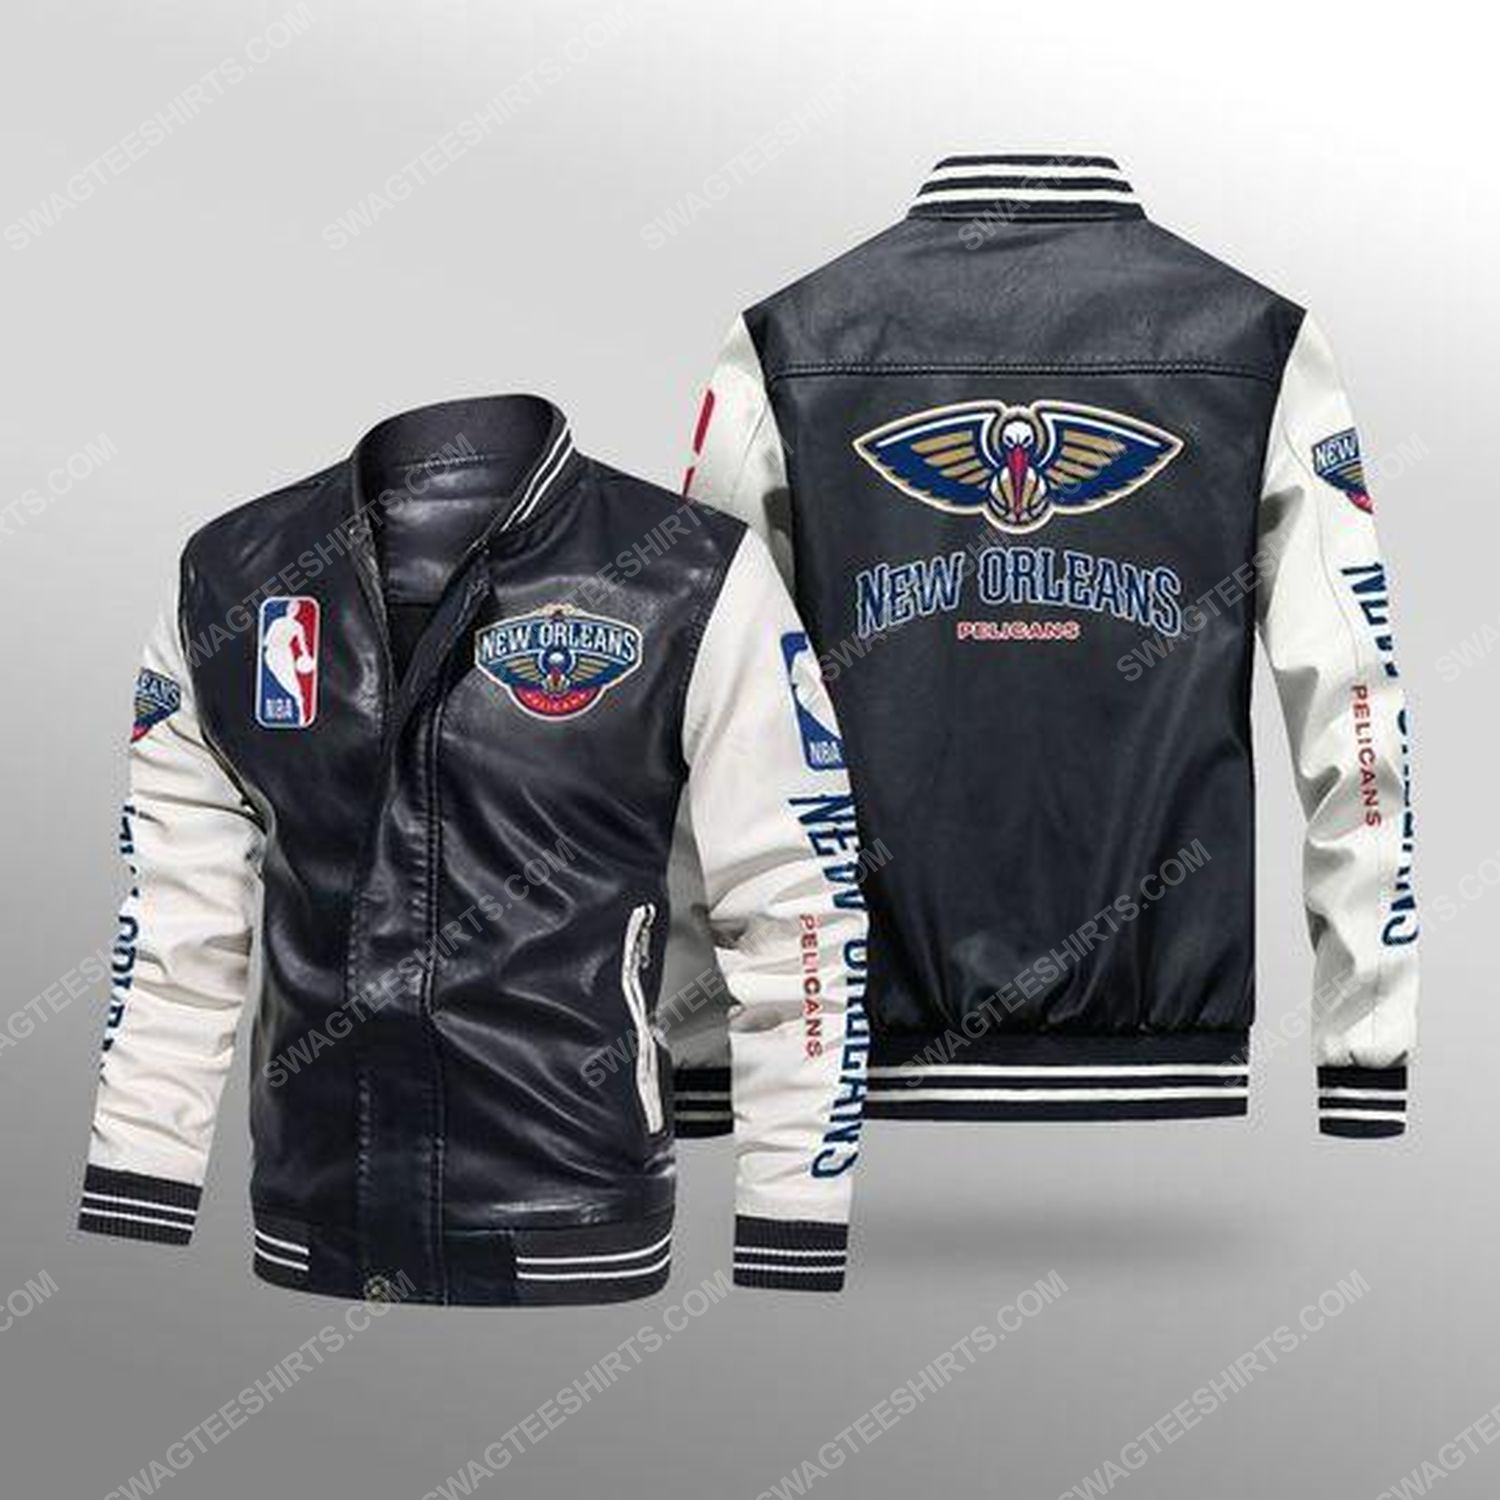 New orleans pelicans all over print leather bomber jacket - white